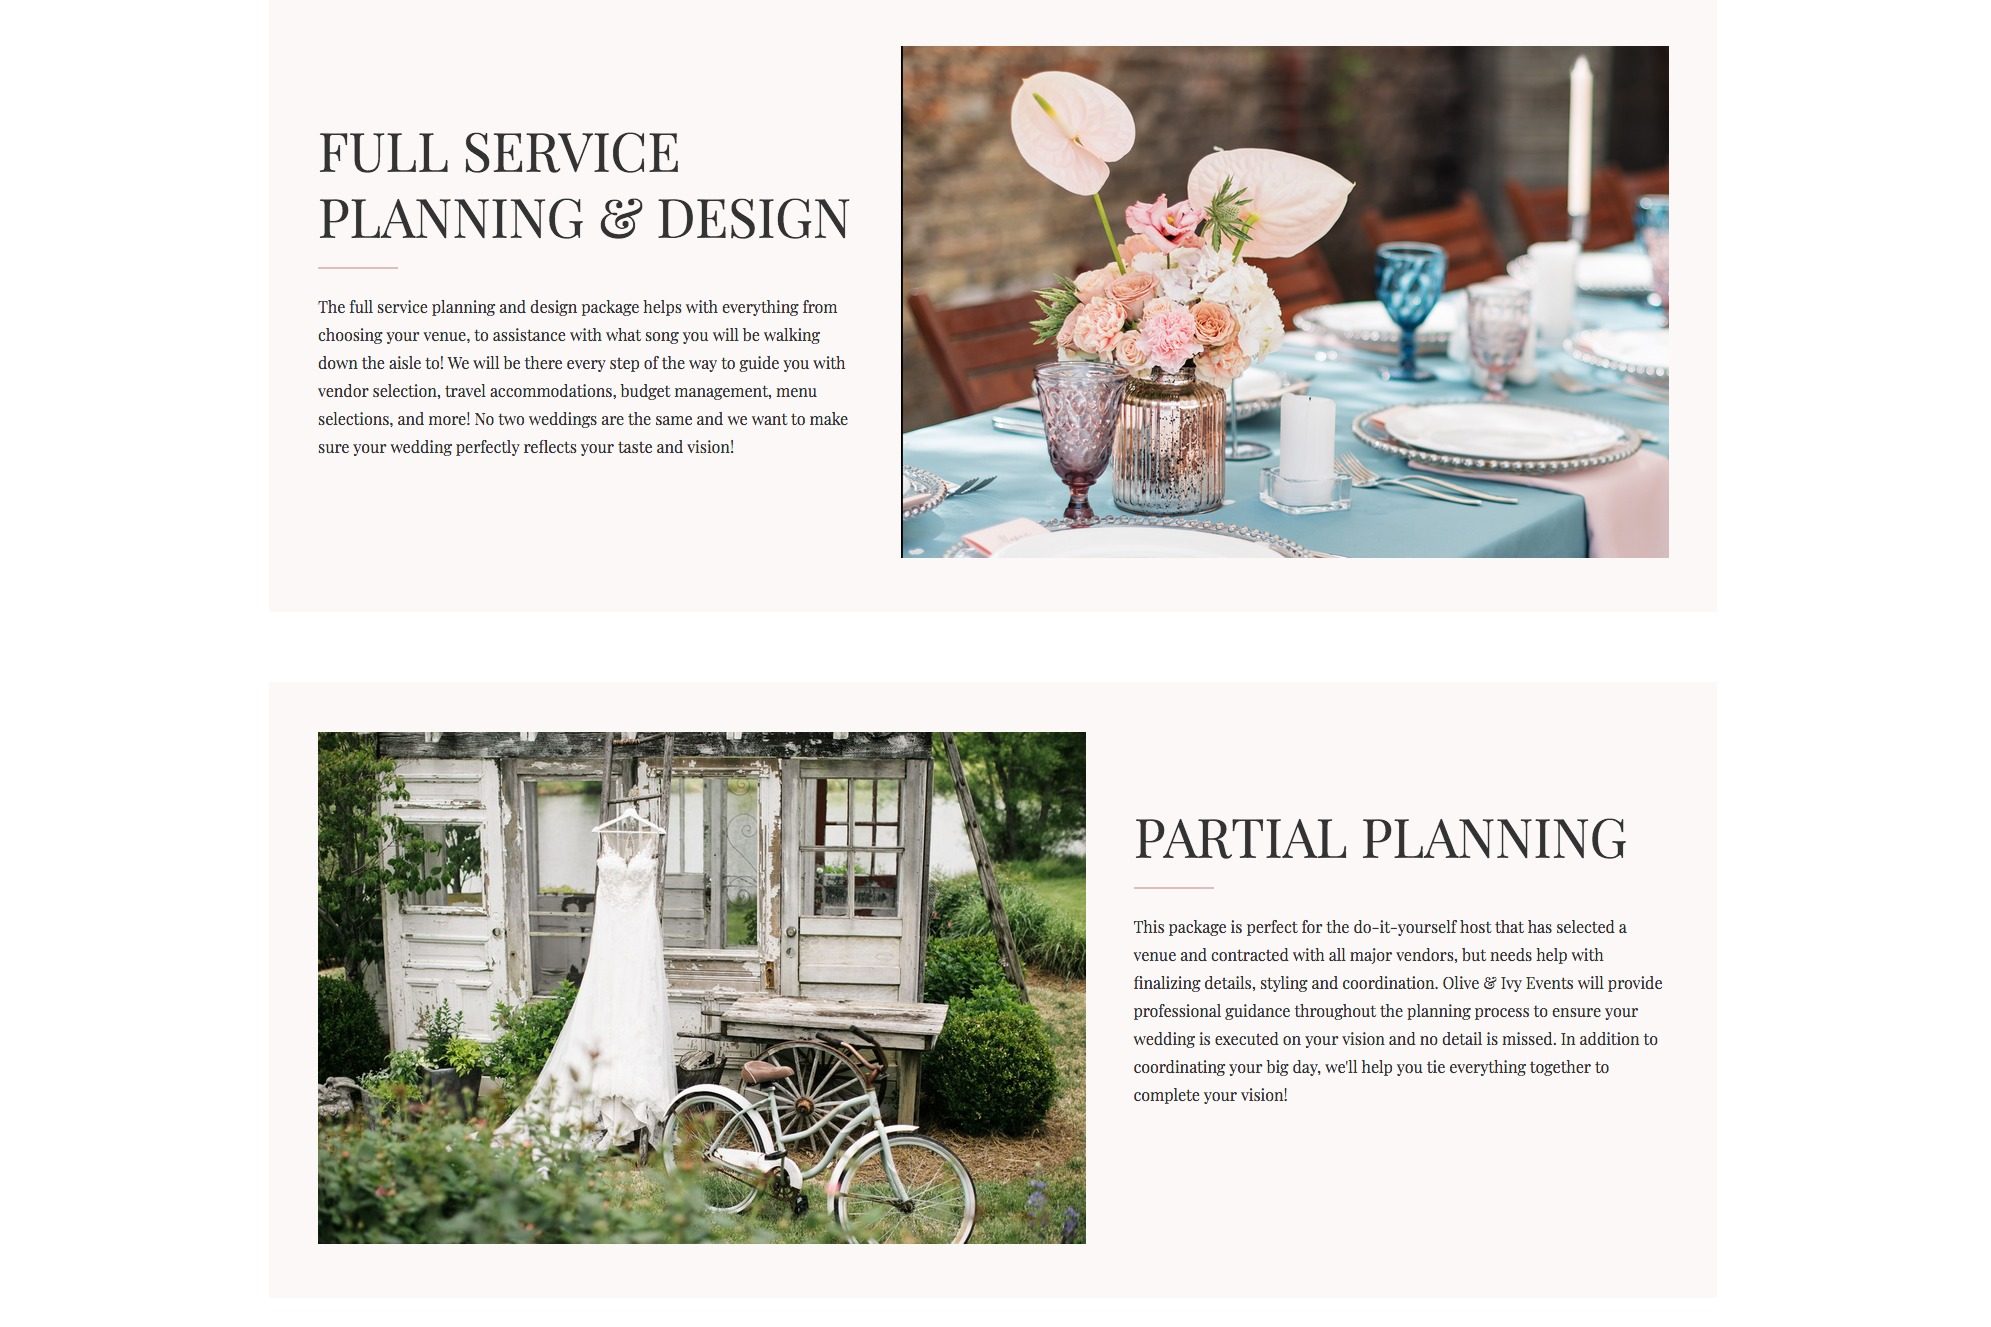 Olive & Ivy Events - Web Design